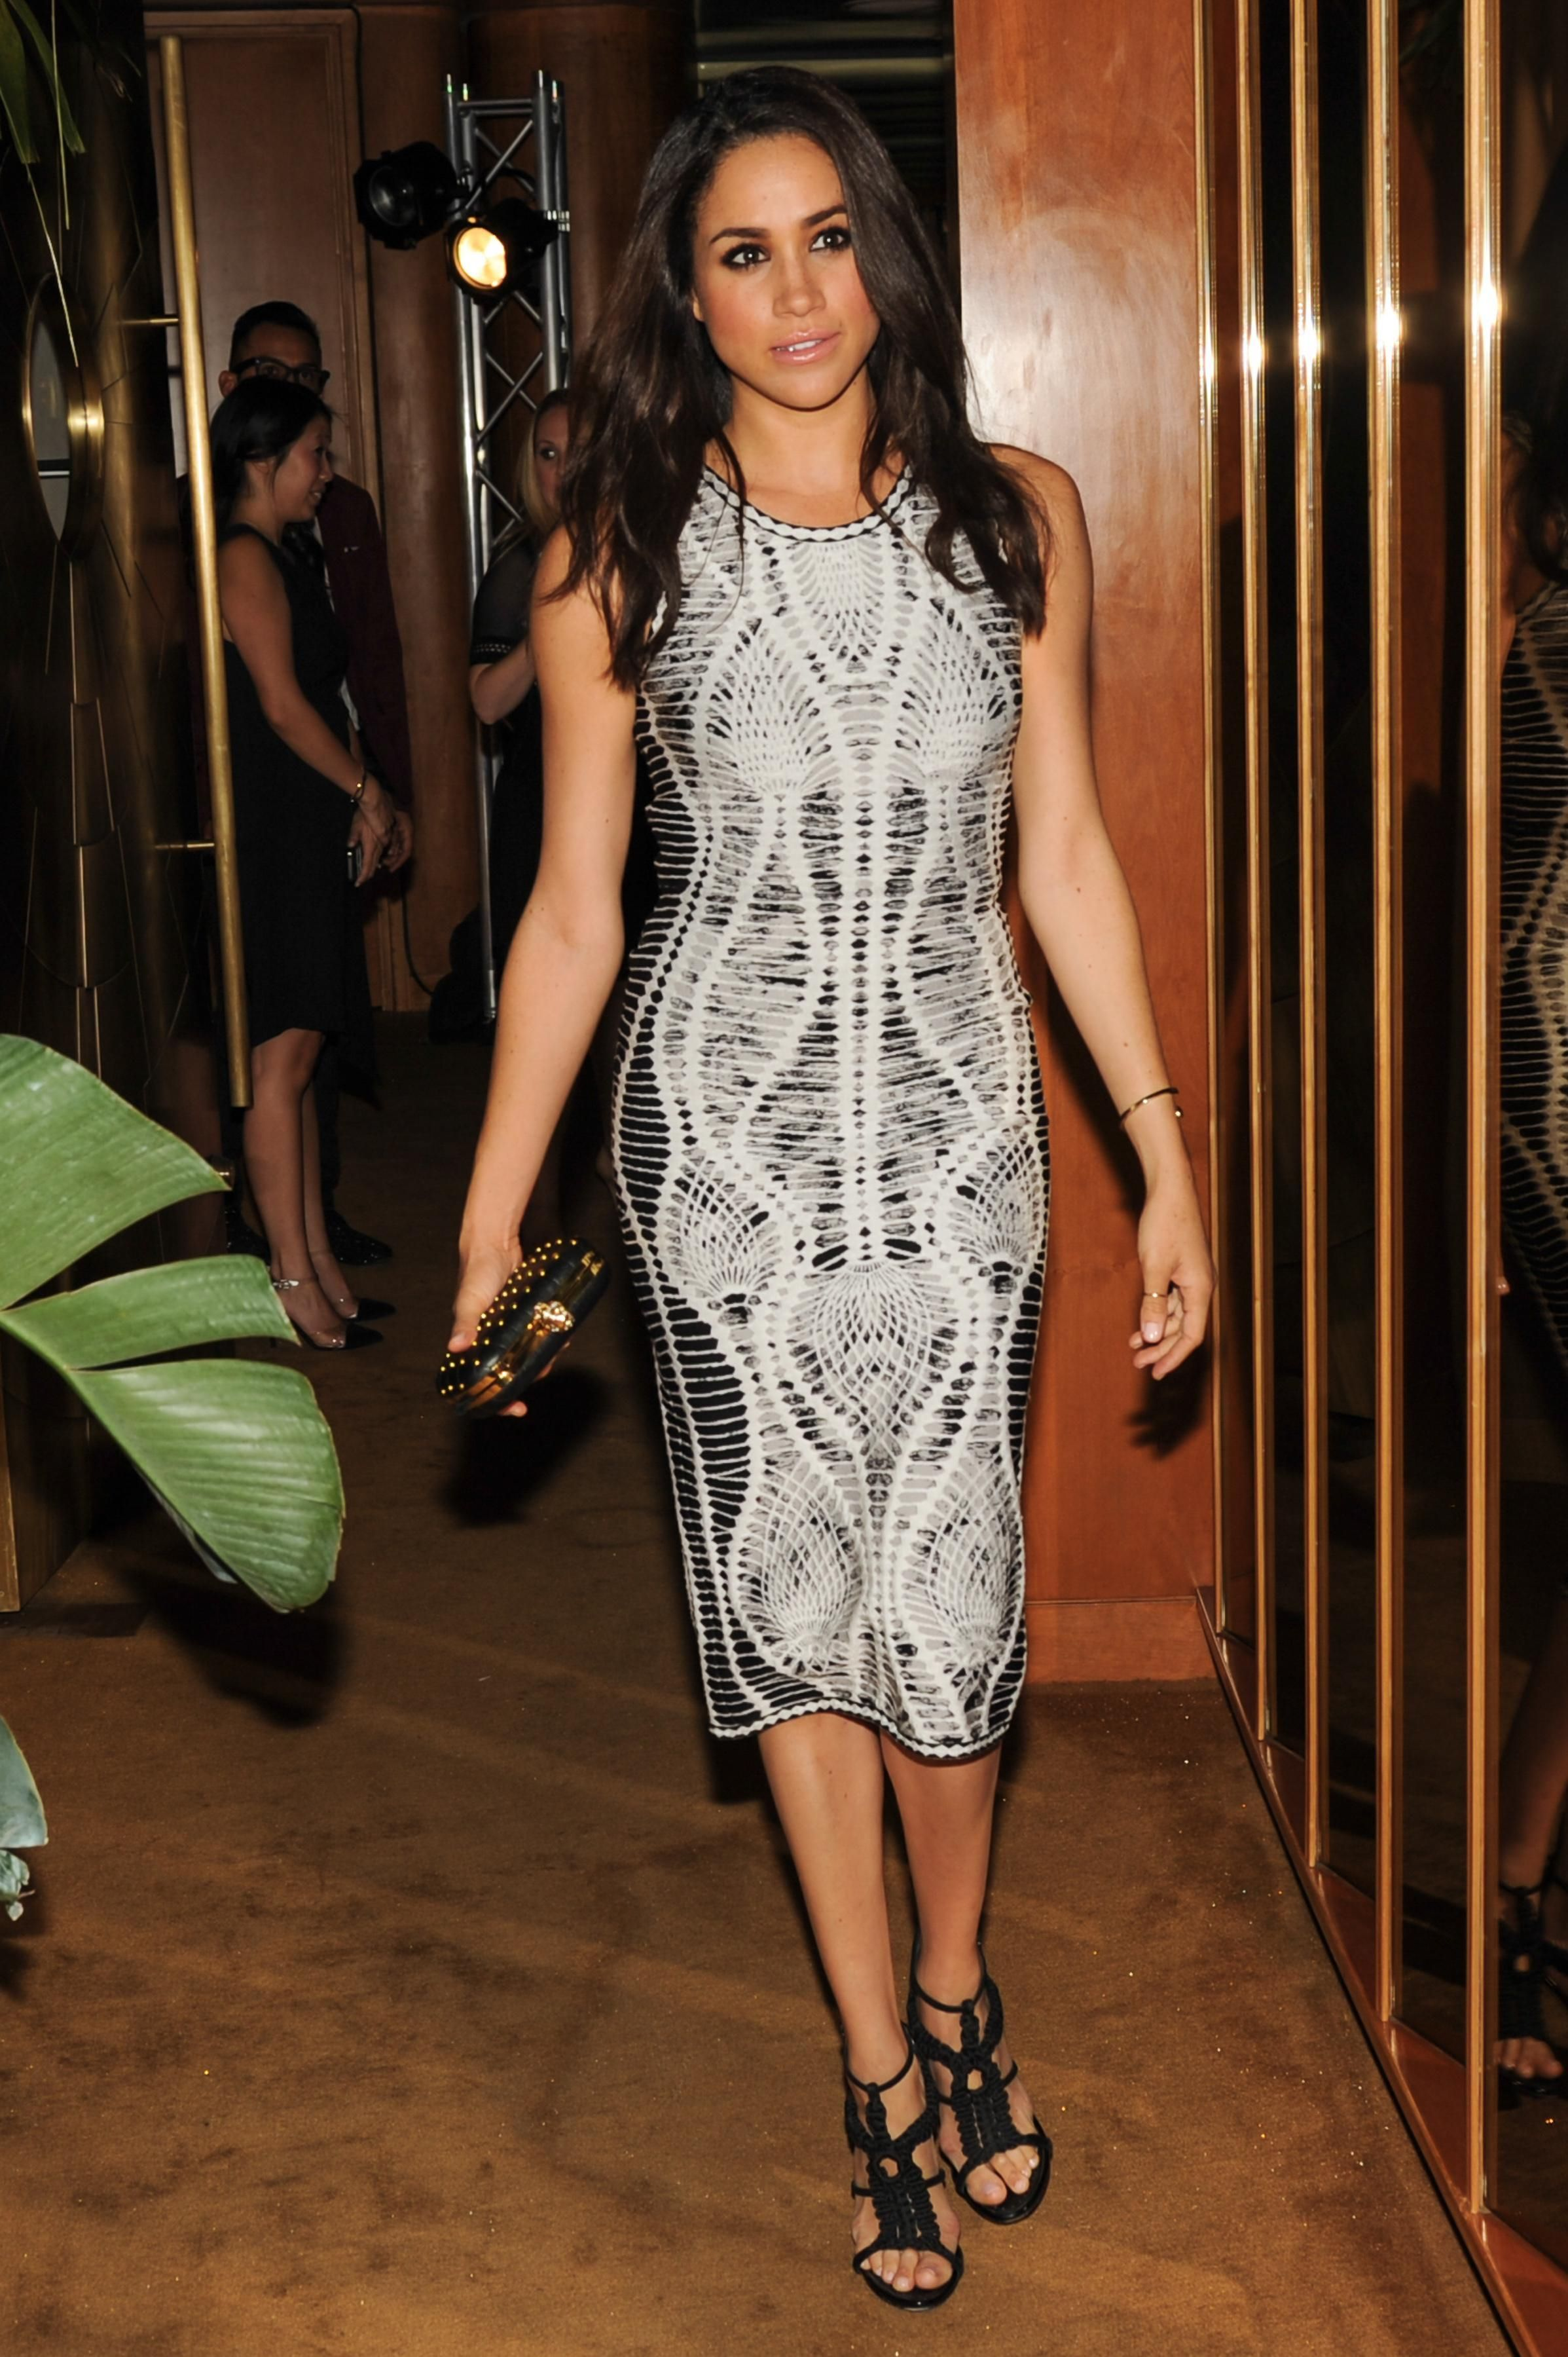 e9448c61f3692 It Girl  A Look At Meghan Markle s Stand Out Fashion Moments